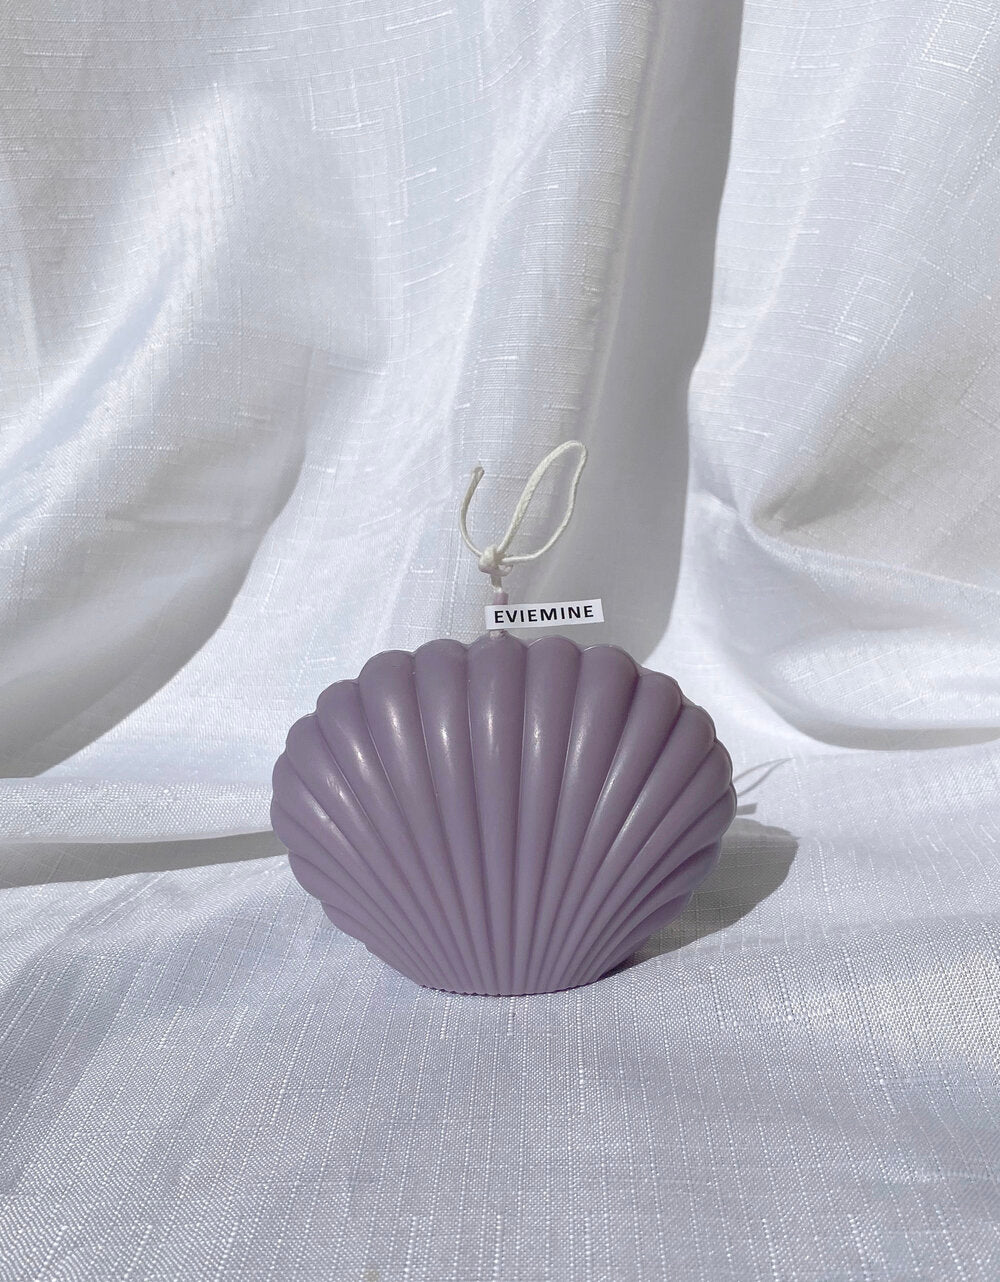 Evie Mine Clam Shell Candle in Lilac